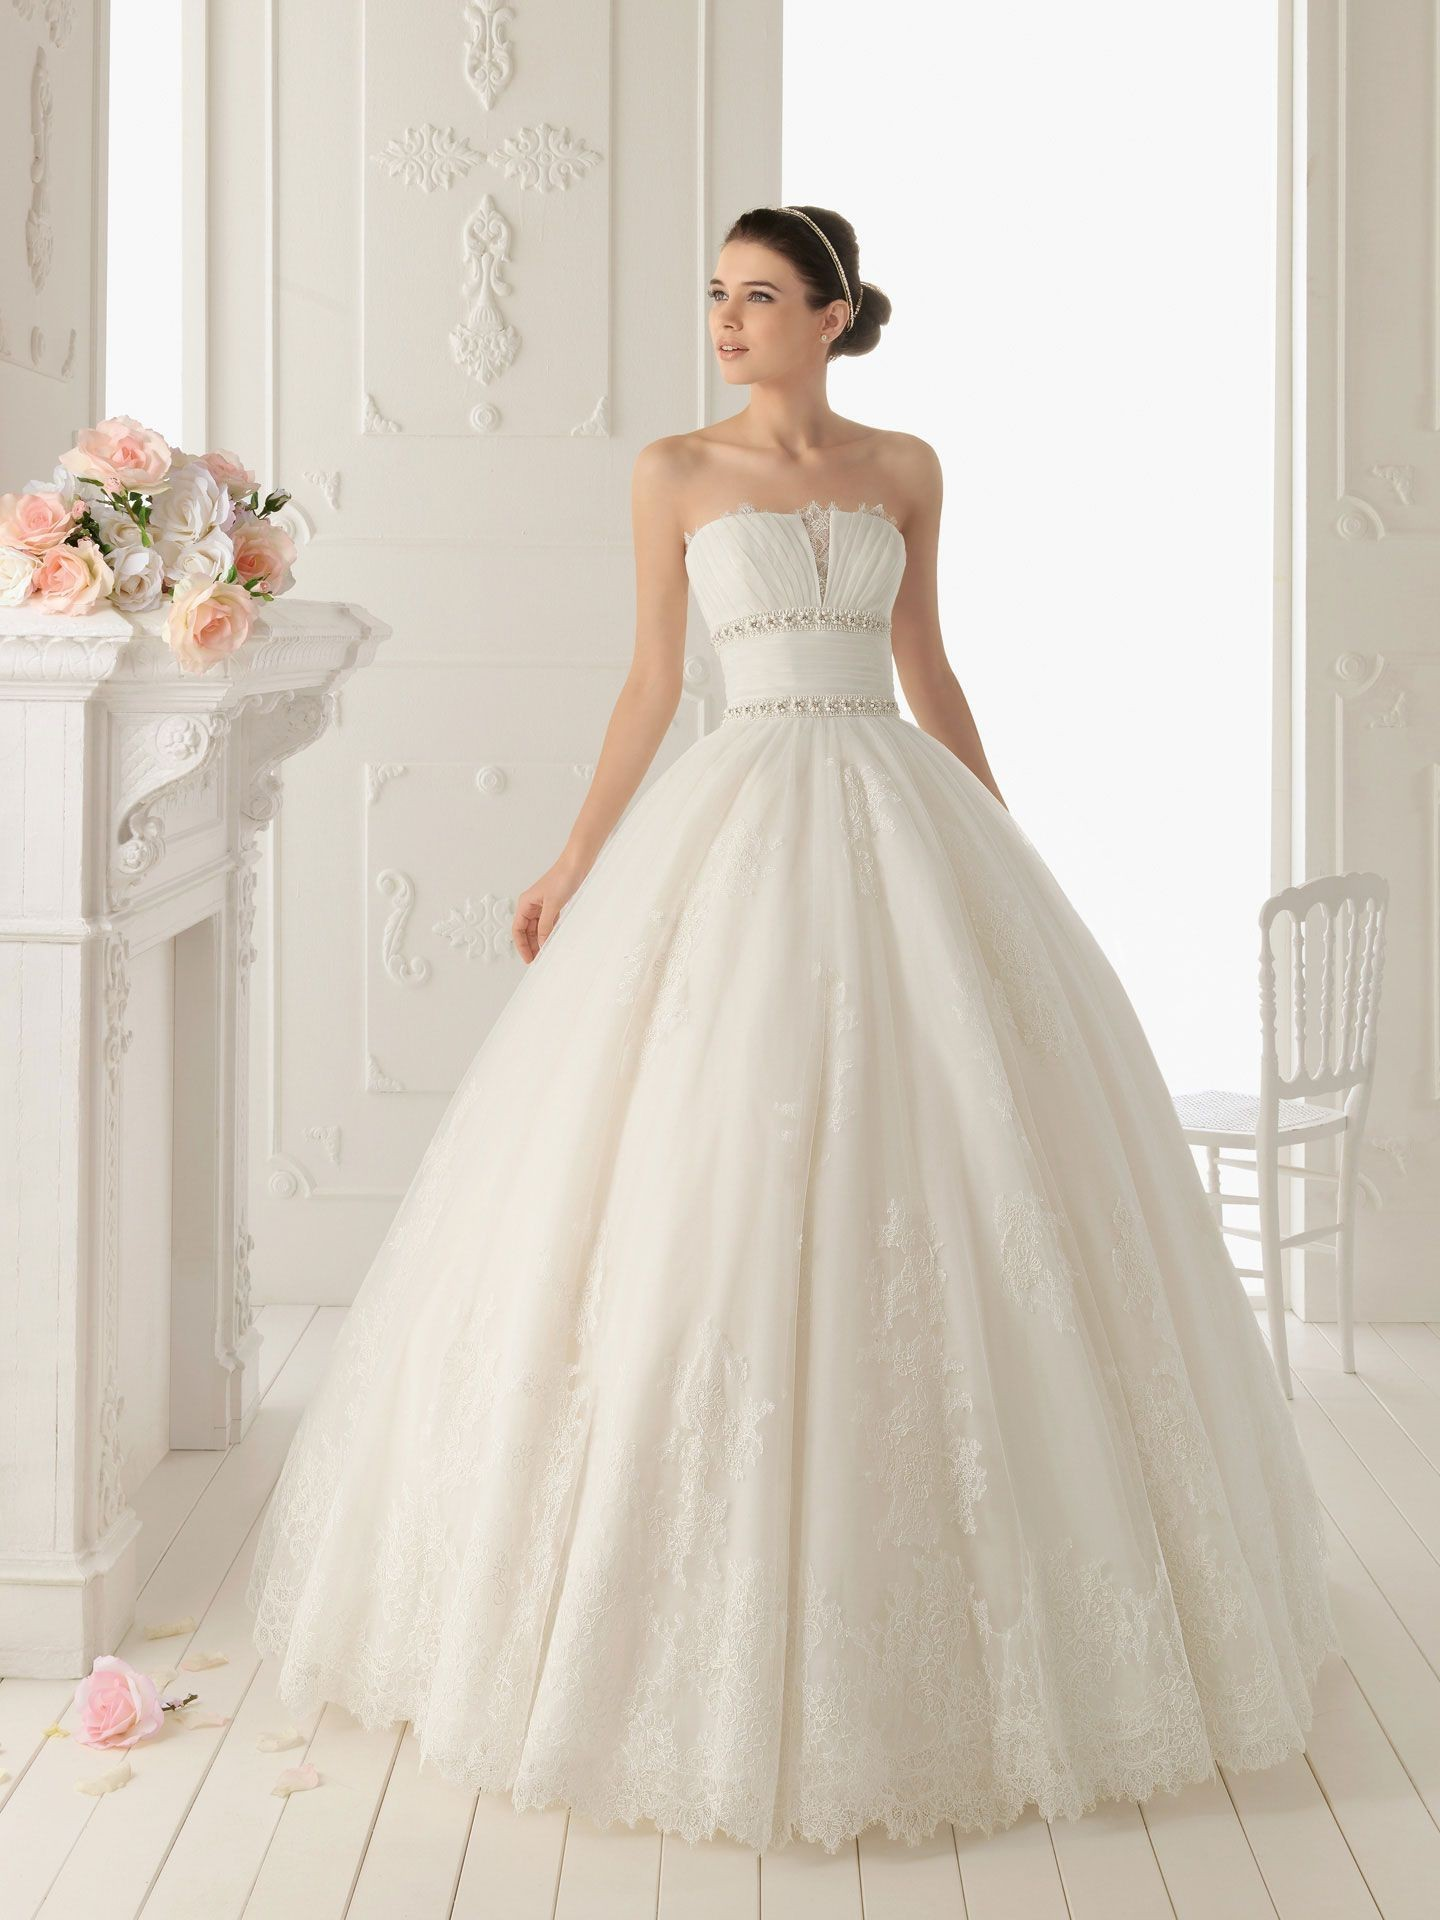 The Silhouettes of Wedding Dresses: How to Choose a Dress by Your ...